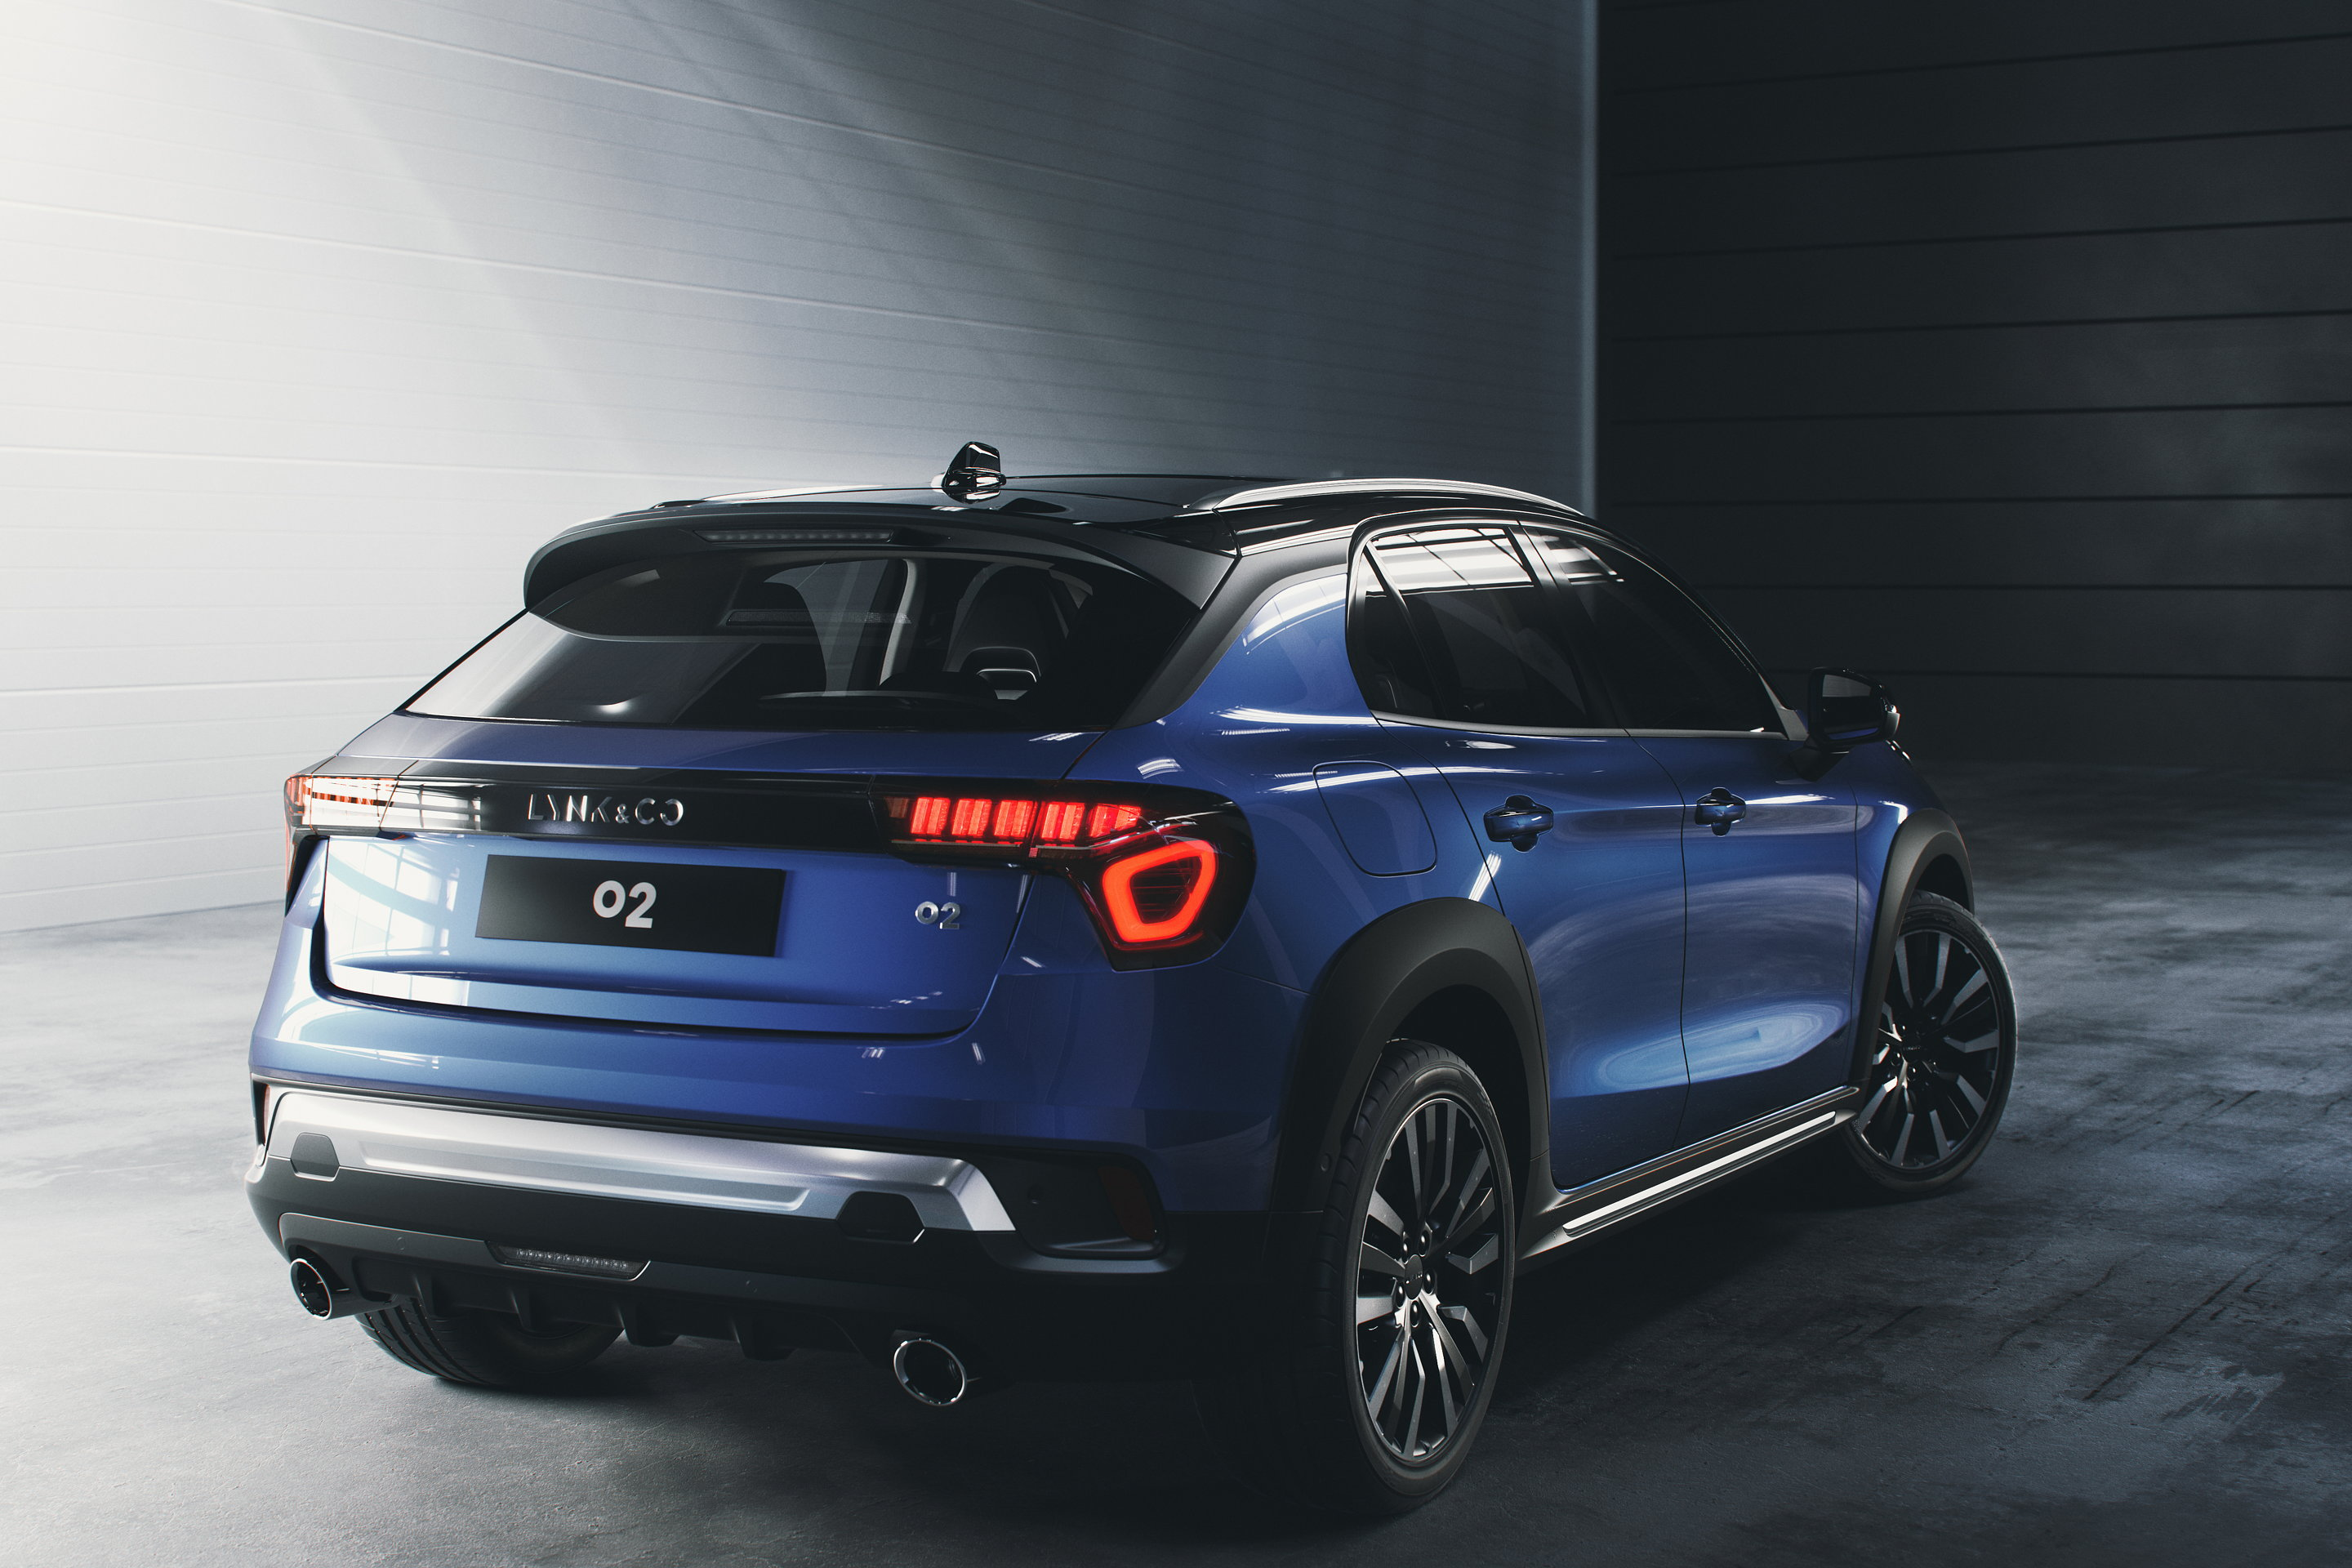 Lynk and Co 02 Crossover SUV